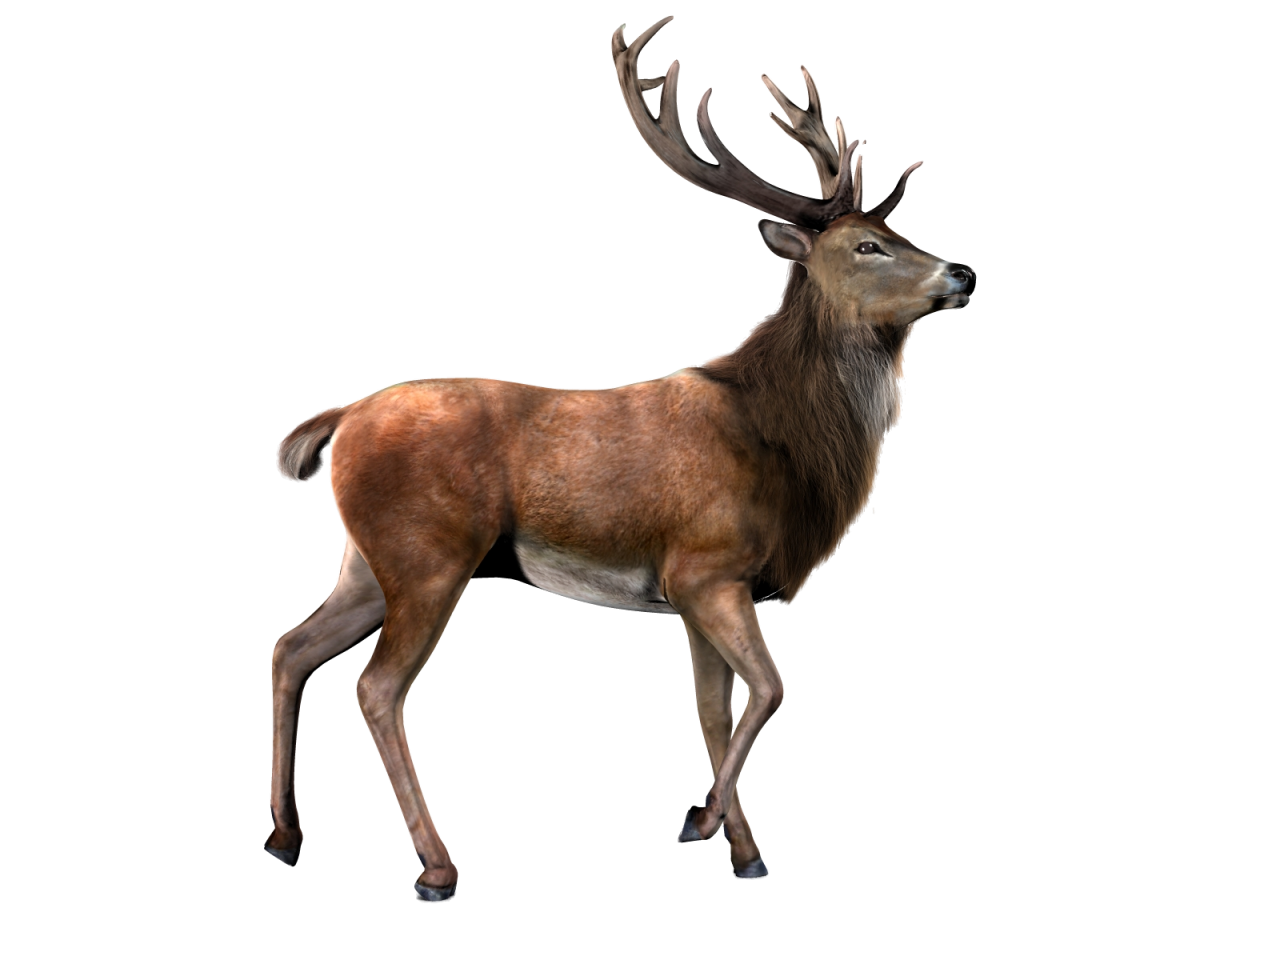 clipart library download Moose Reindeer Capreolinae Roe deer